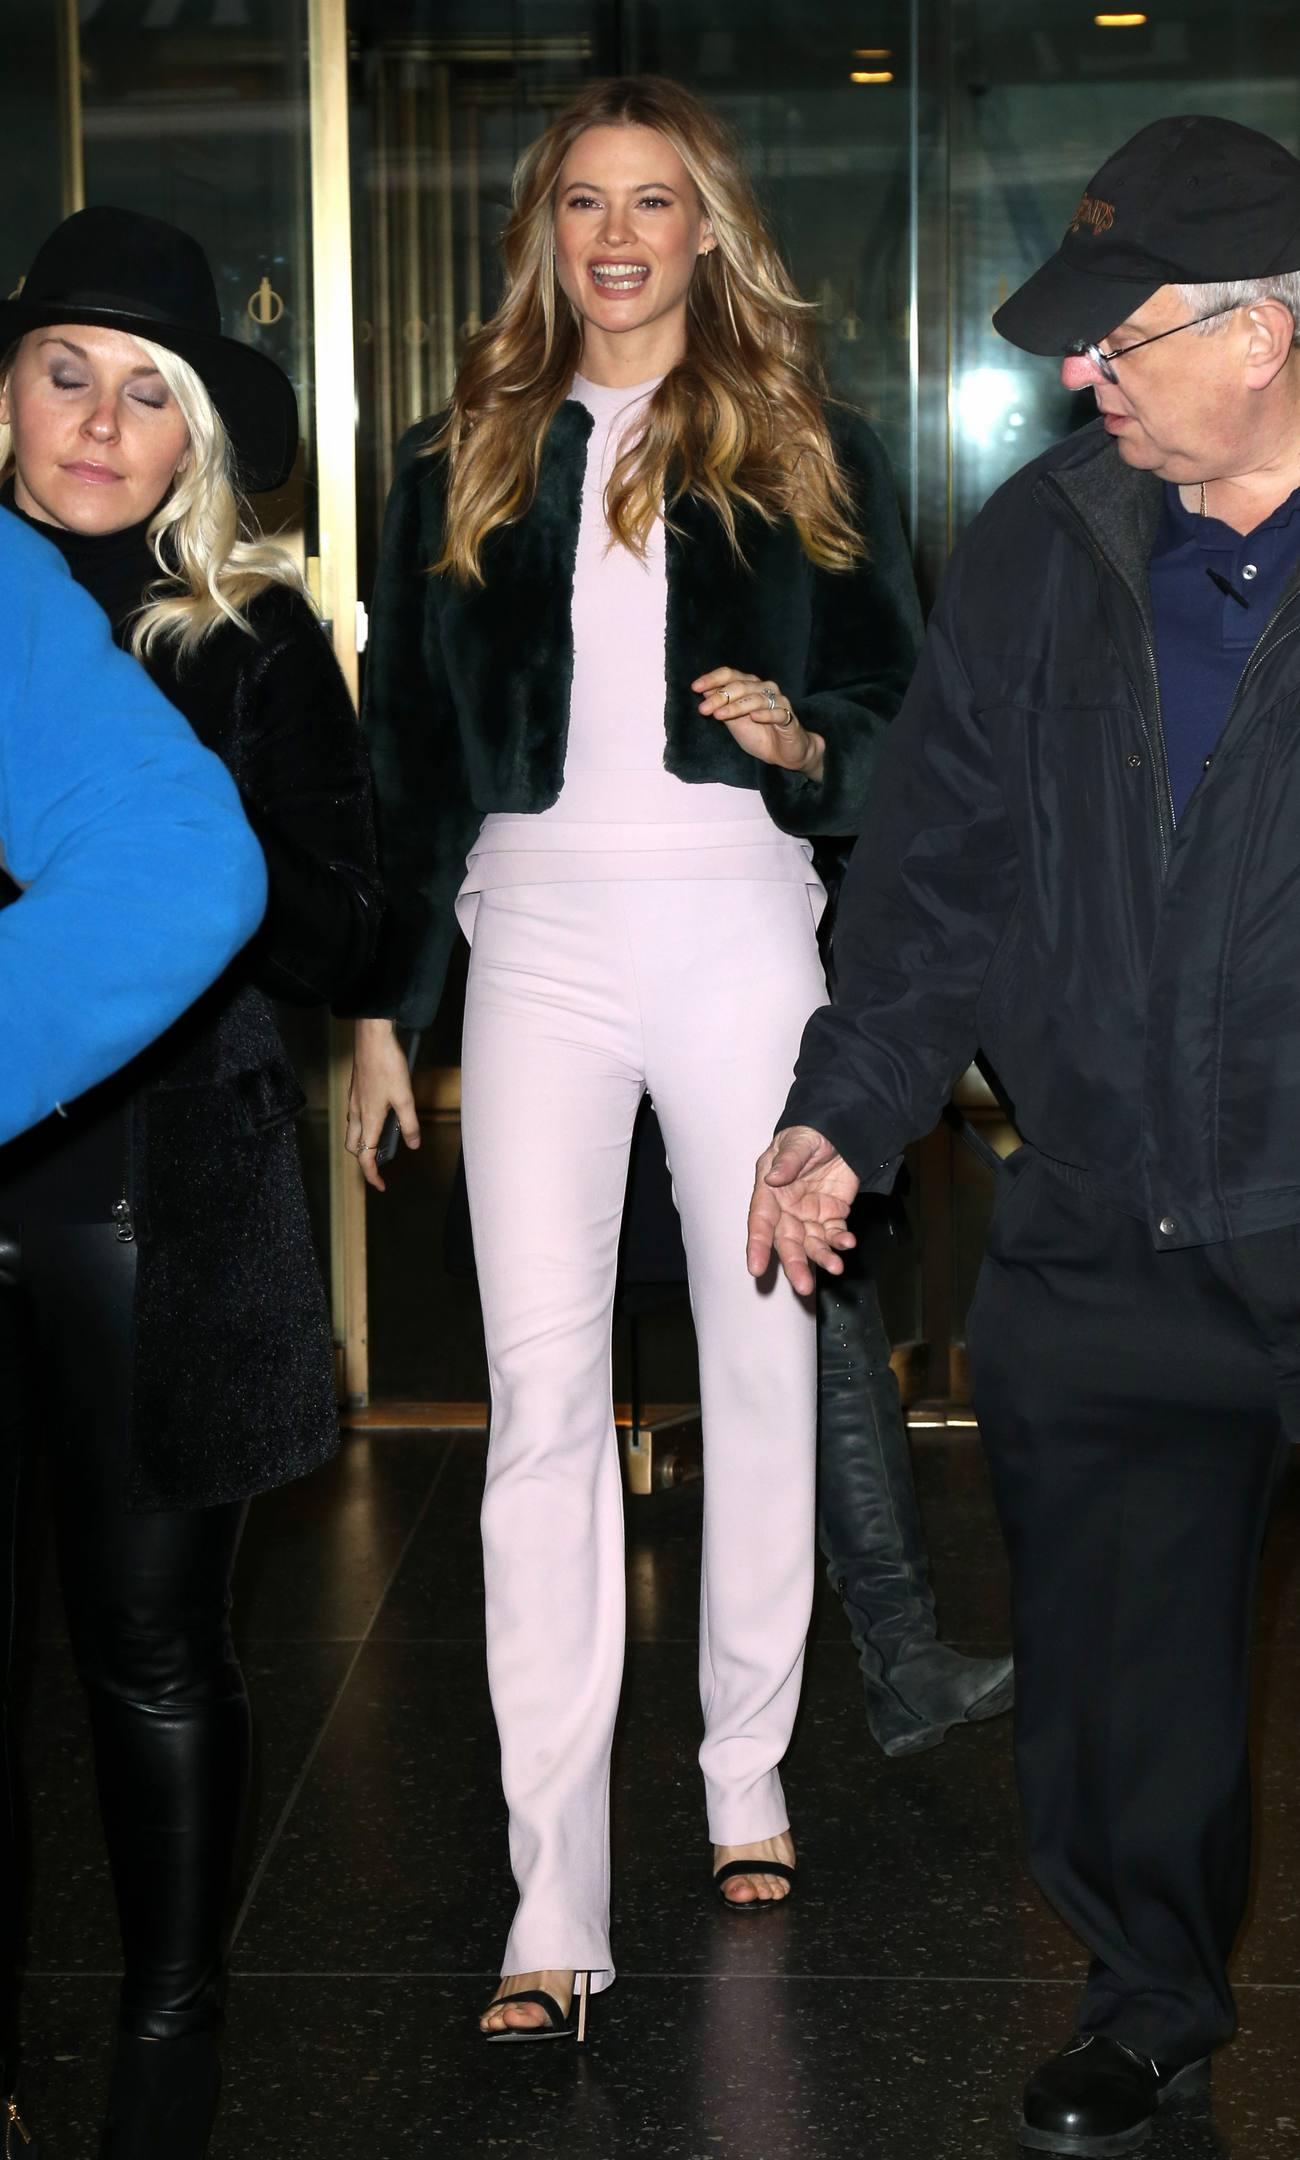 Behati Prinsloo and Taylor Hill Leaving AOL in NYC-1